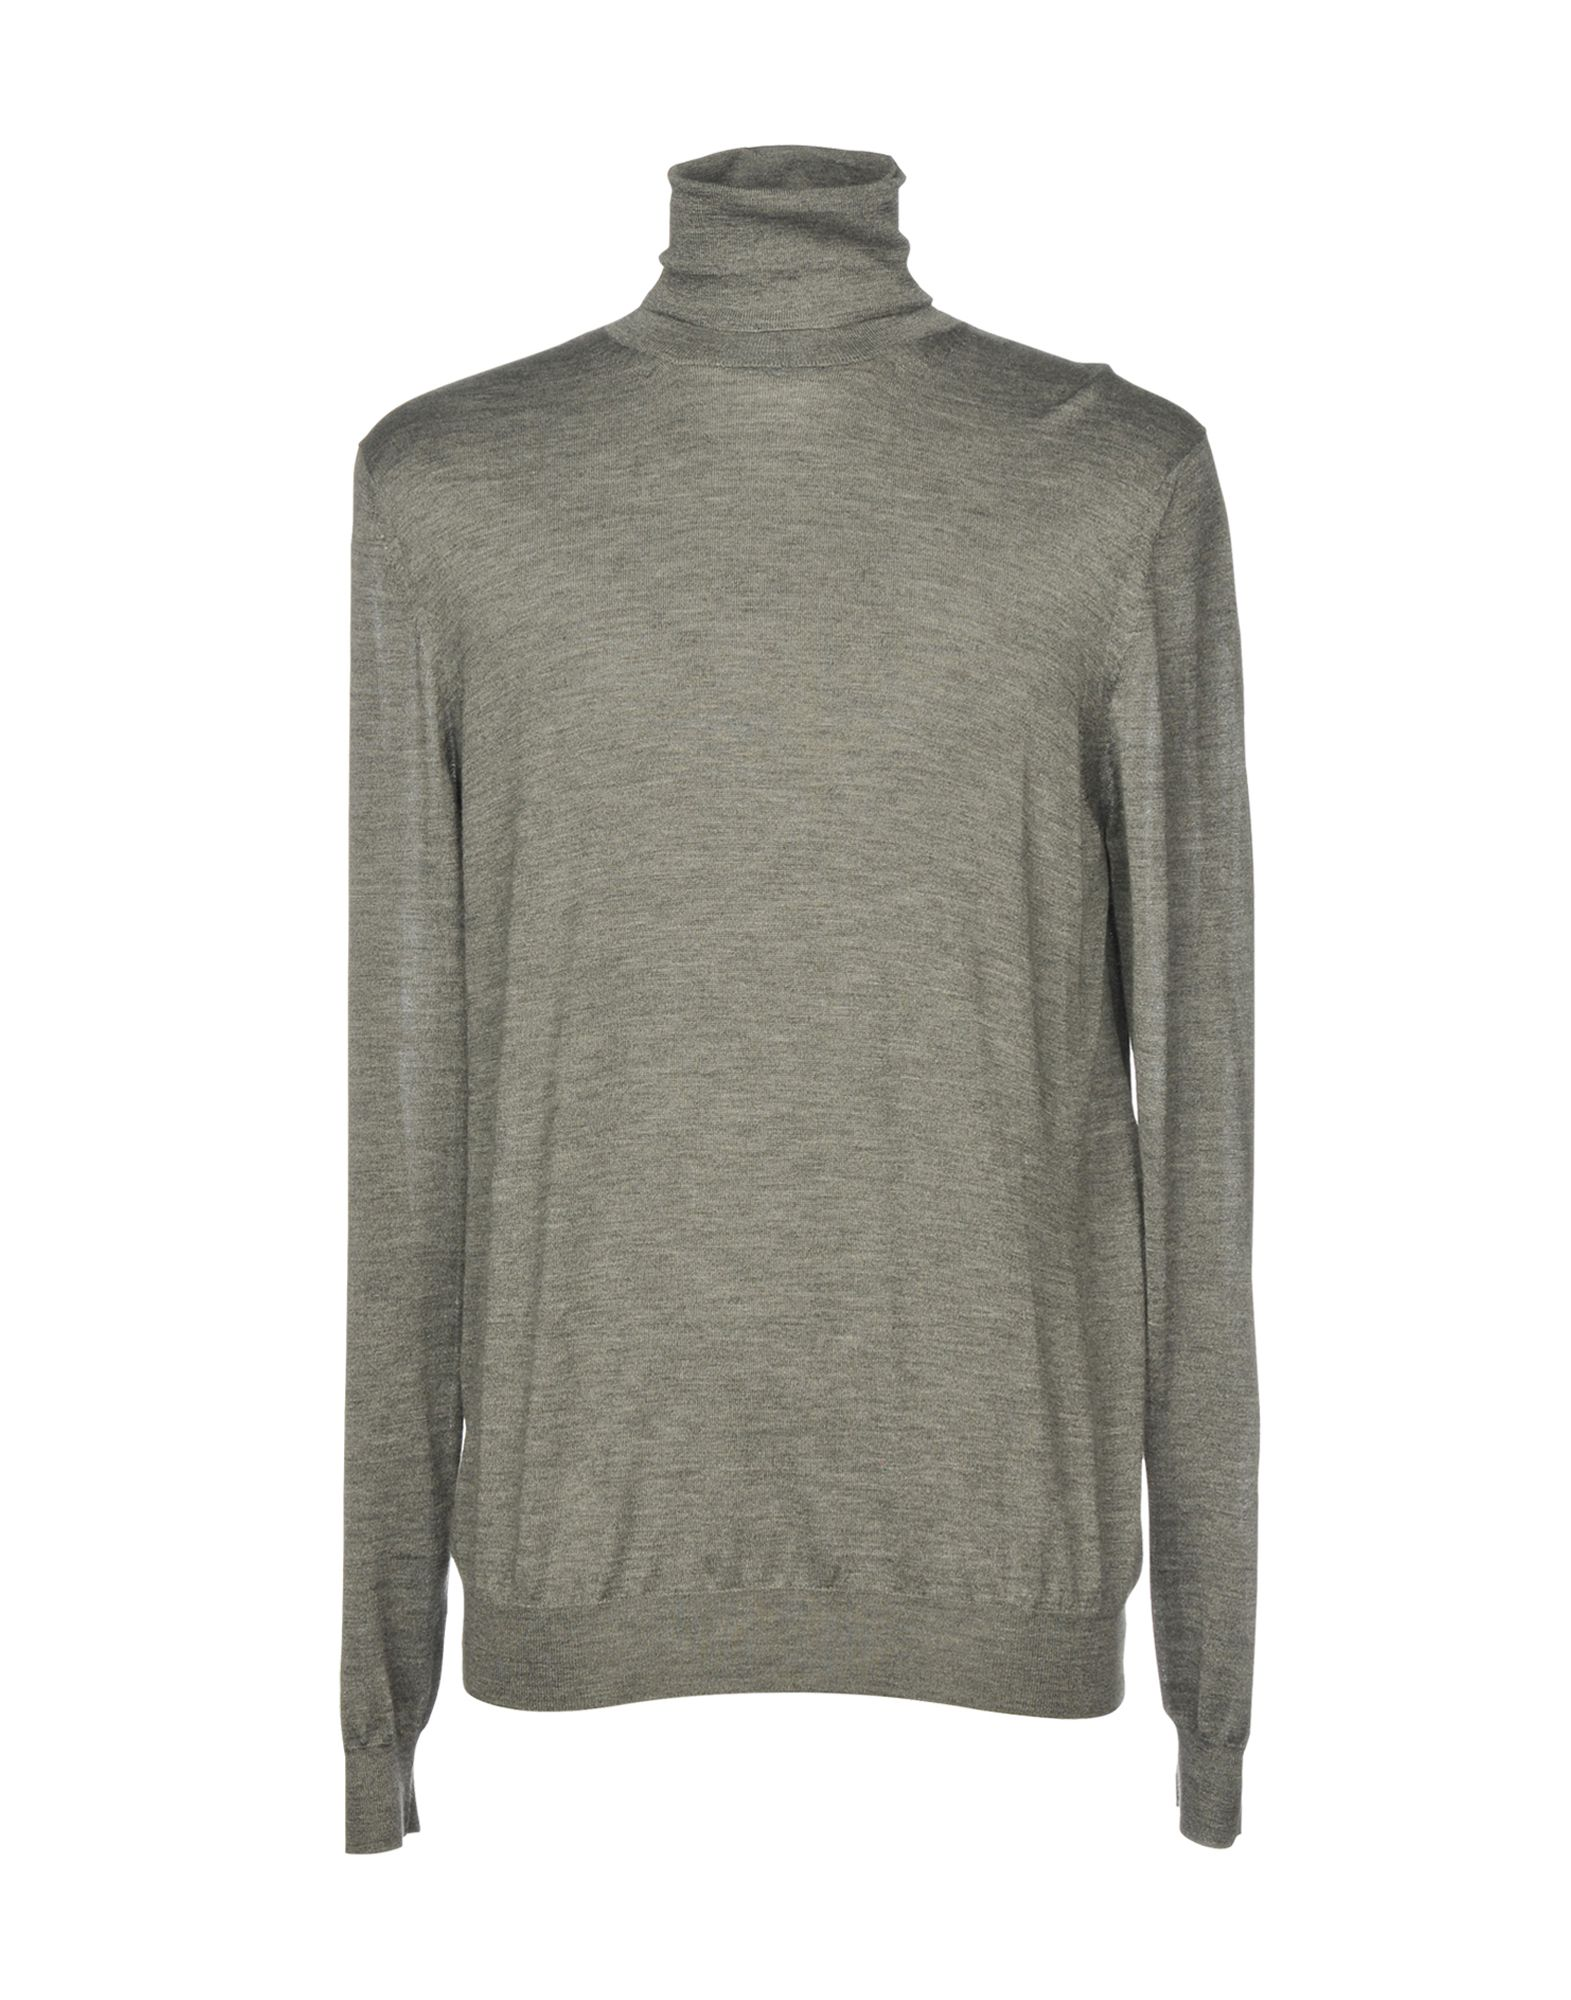 FAÇONNABLE Cashmere Blend in Grey